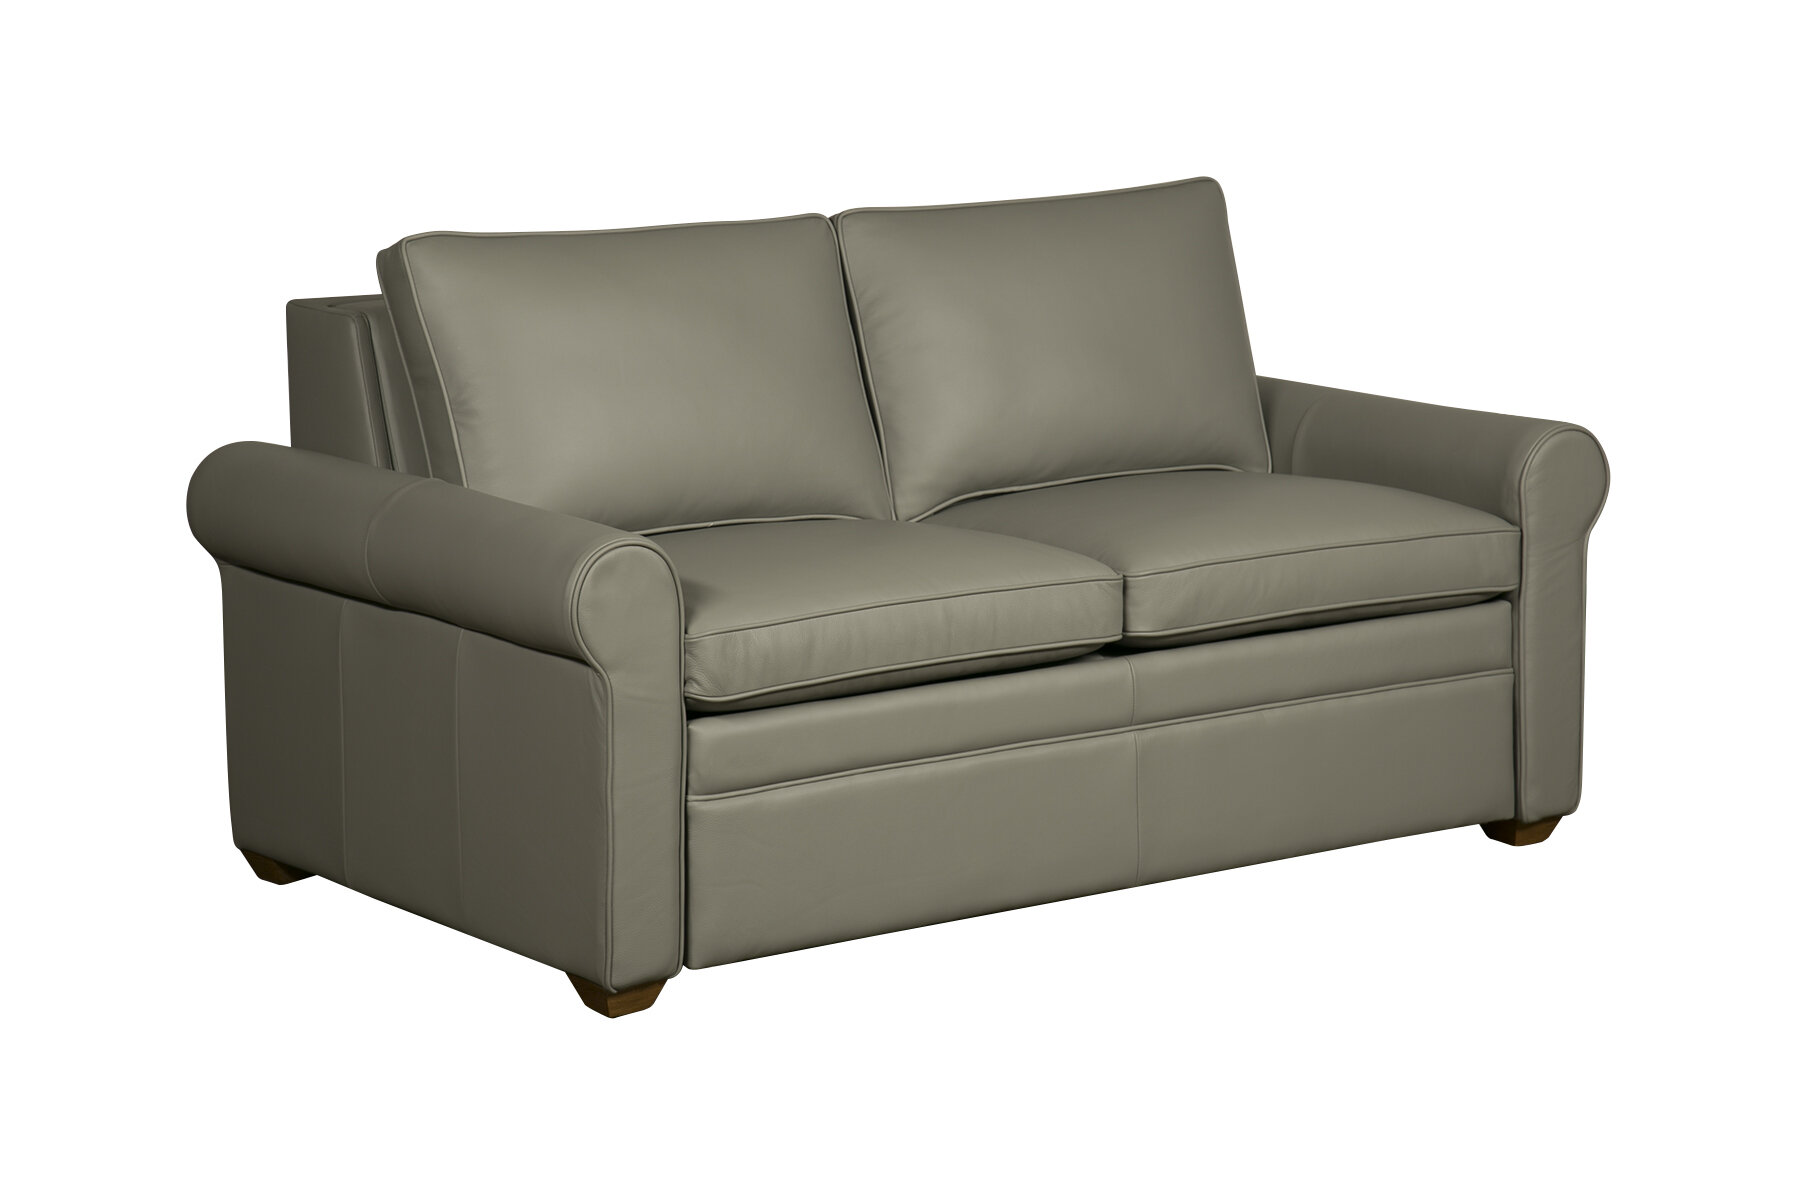 Westland And Birch Kipling Leather Sleeper Sofa | Wayfair